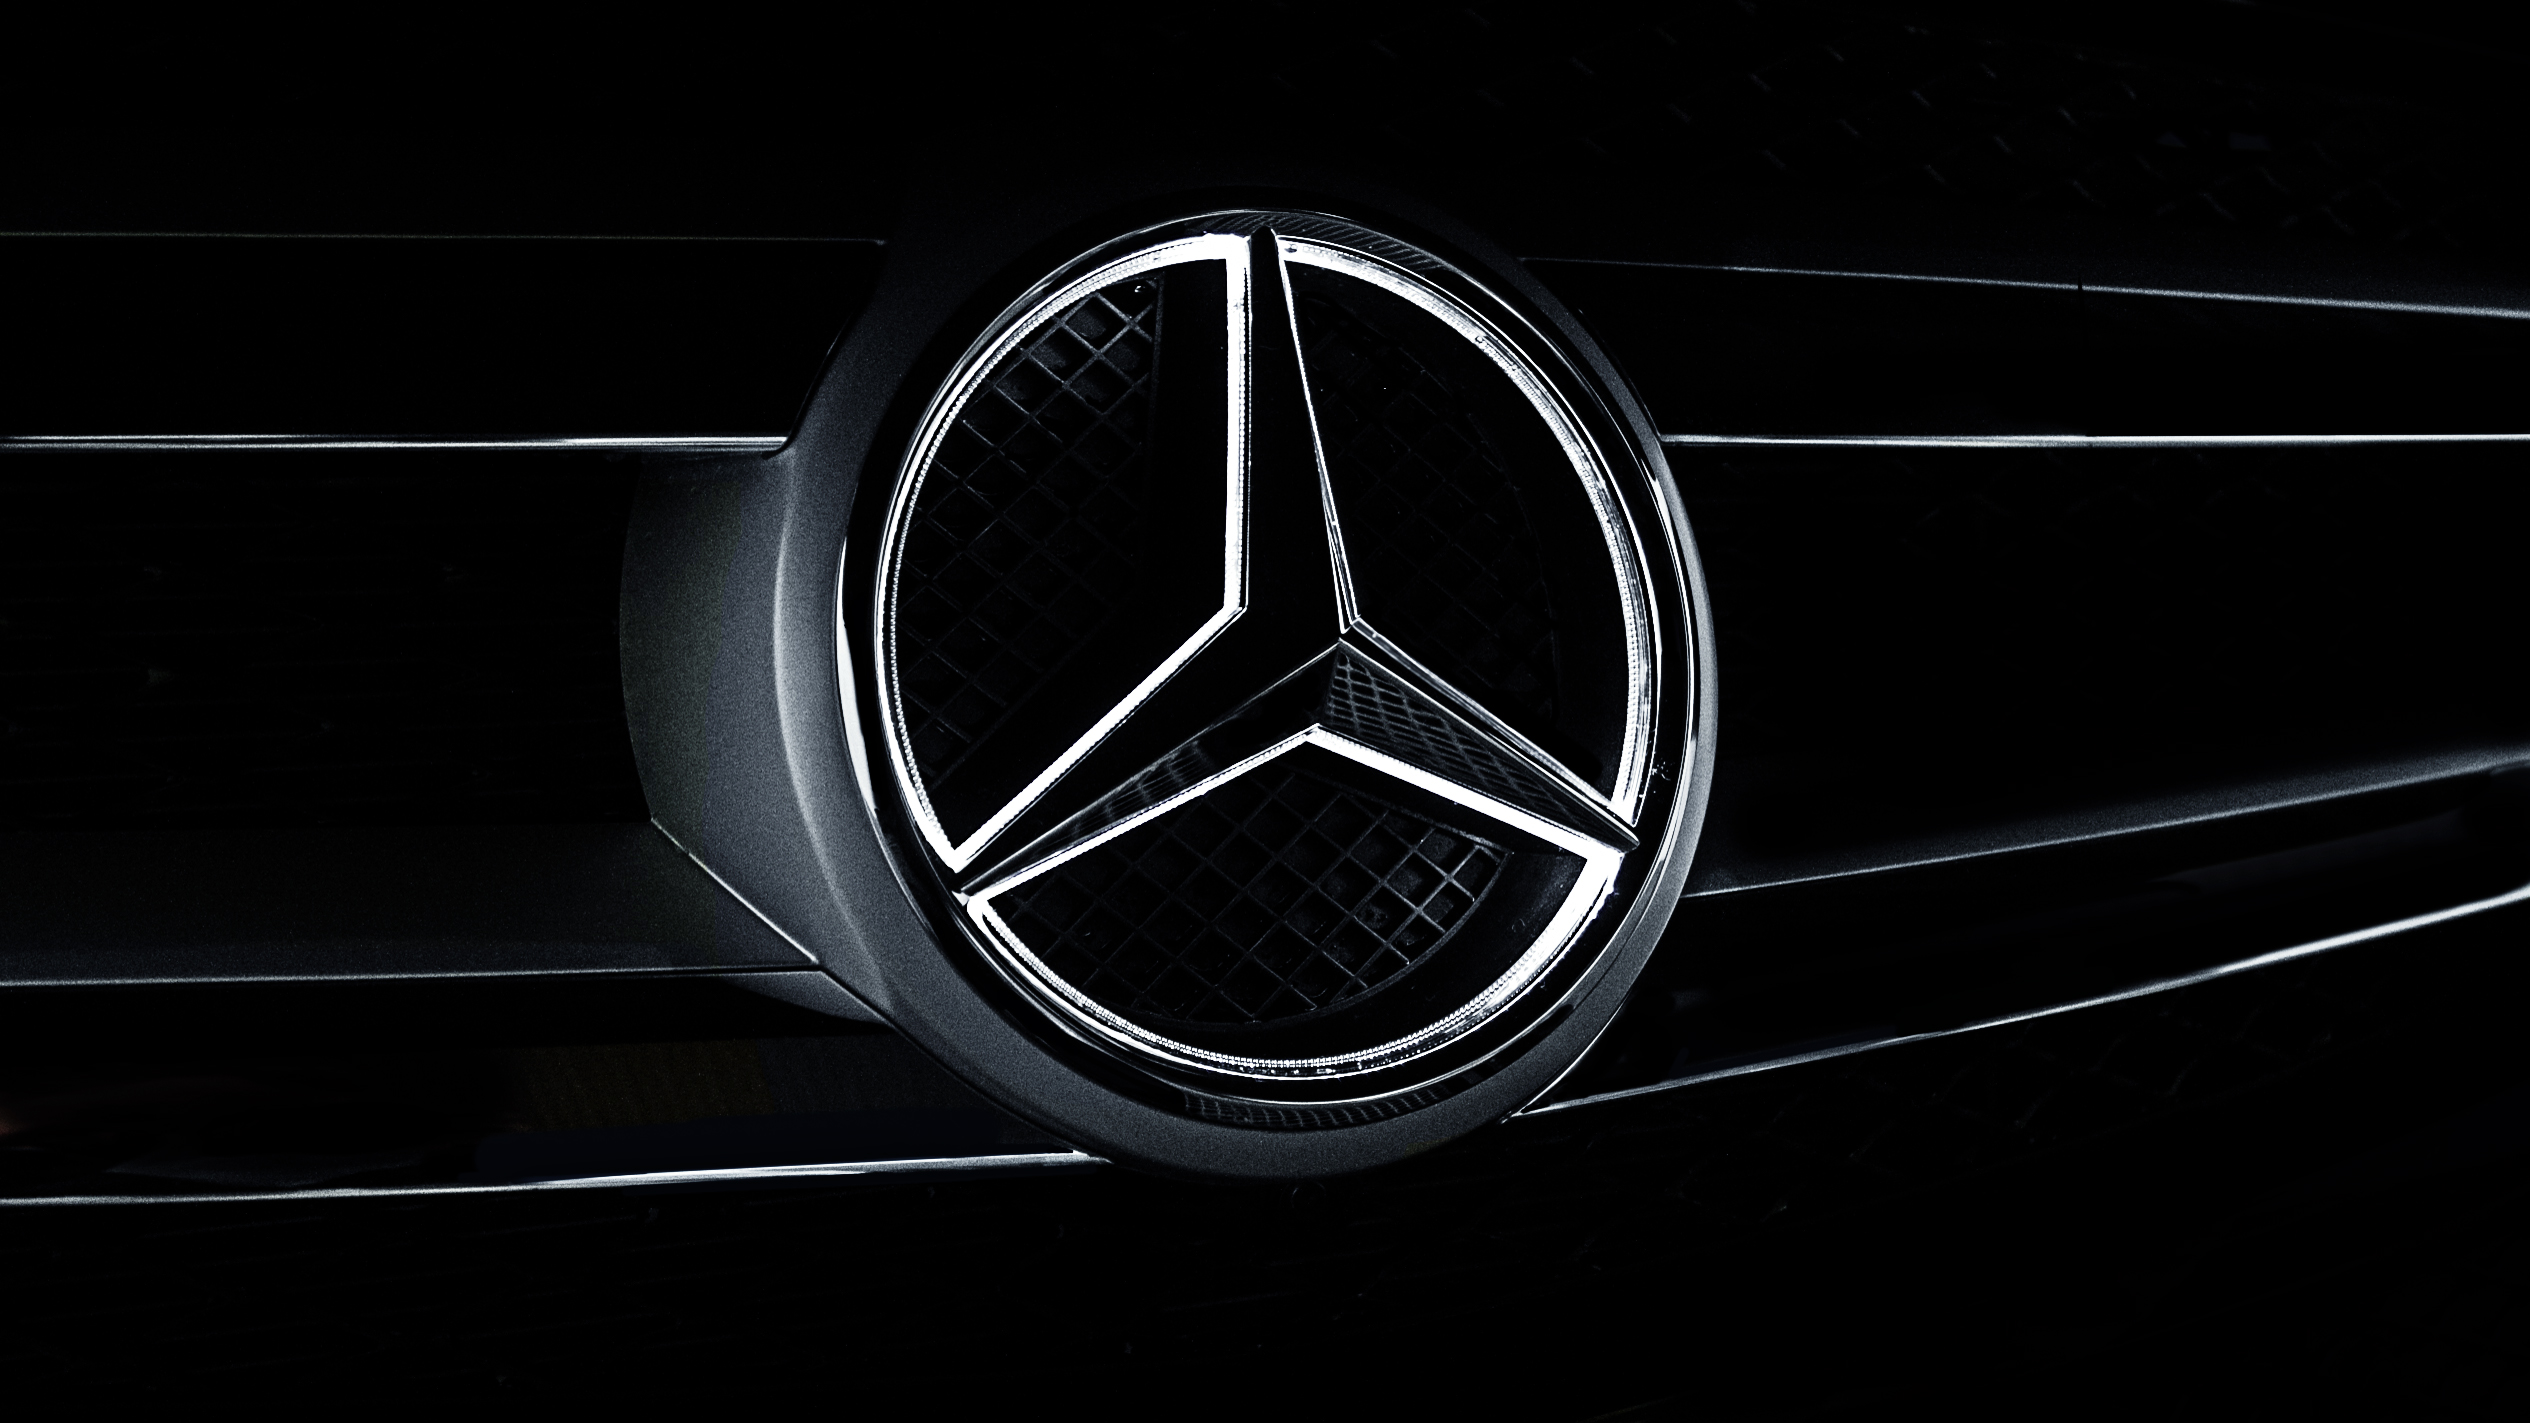 Mercedes Benz Logo Wallpapers Pictures Images 2530x1423